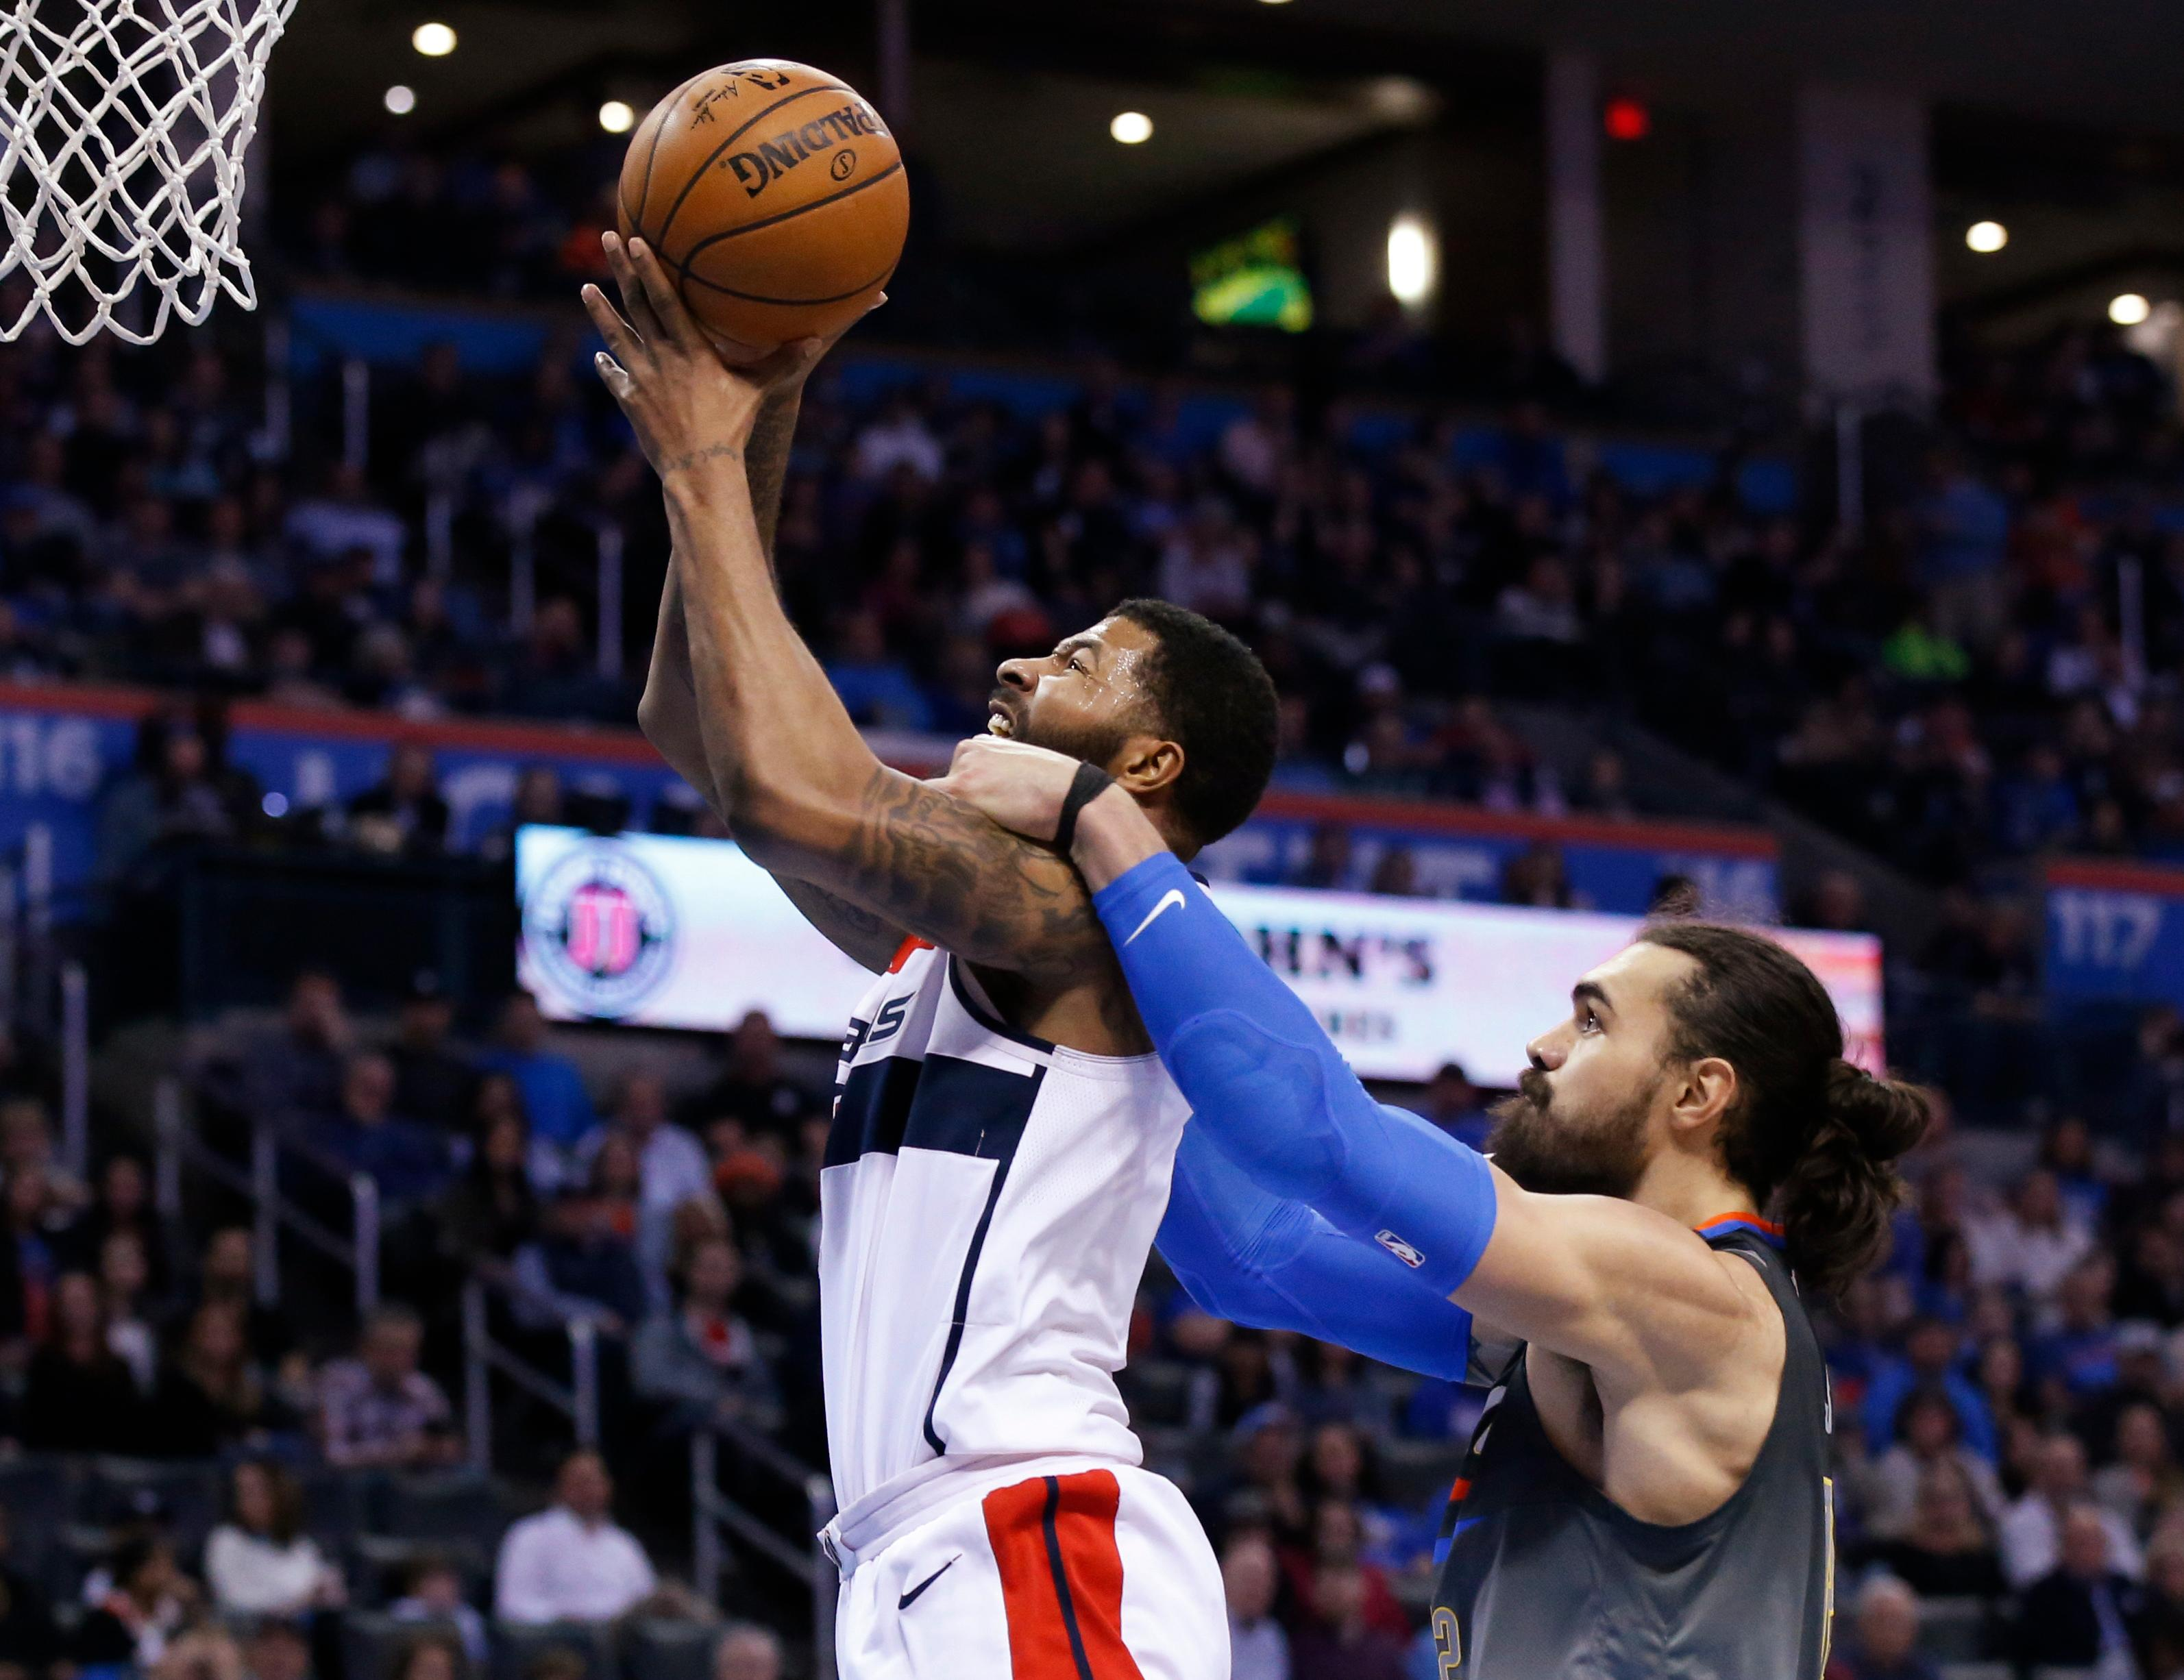 Washington Wizards forward Markieff Morris, left, is fouled by Oklahoma City Thunder center Steven Adams during the second quarter of an NBA basketball game in Oklahoma City, Thursday, Jan. 25, 2018. (AP Photo/Sue Ogrocki)